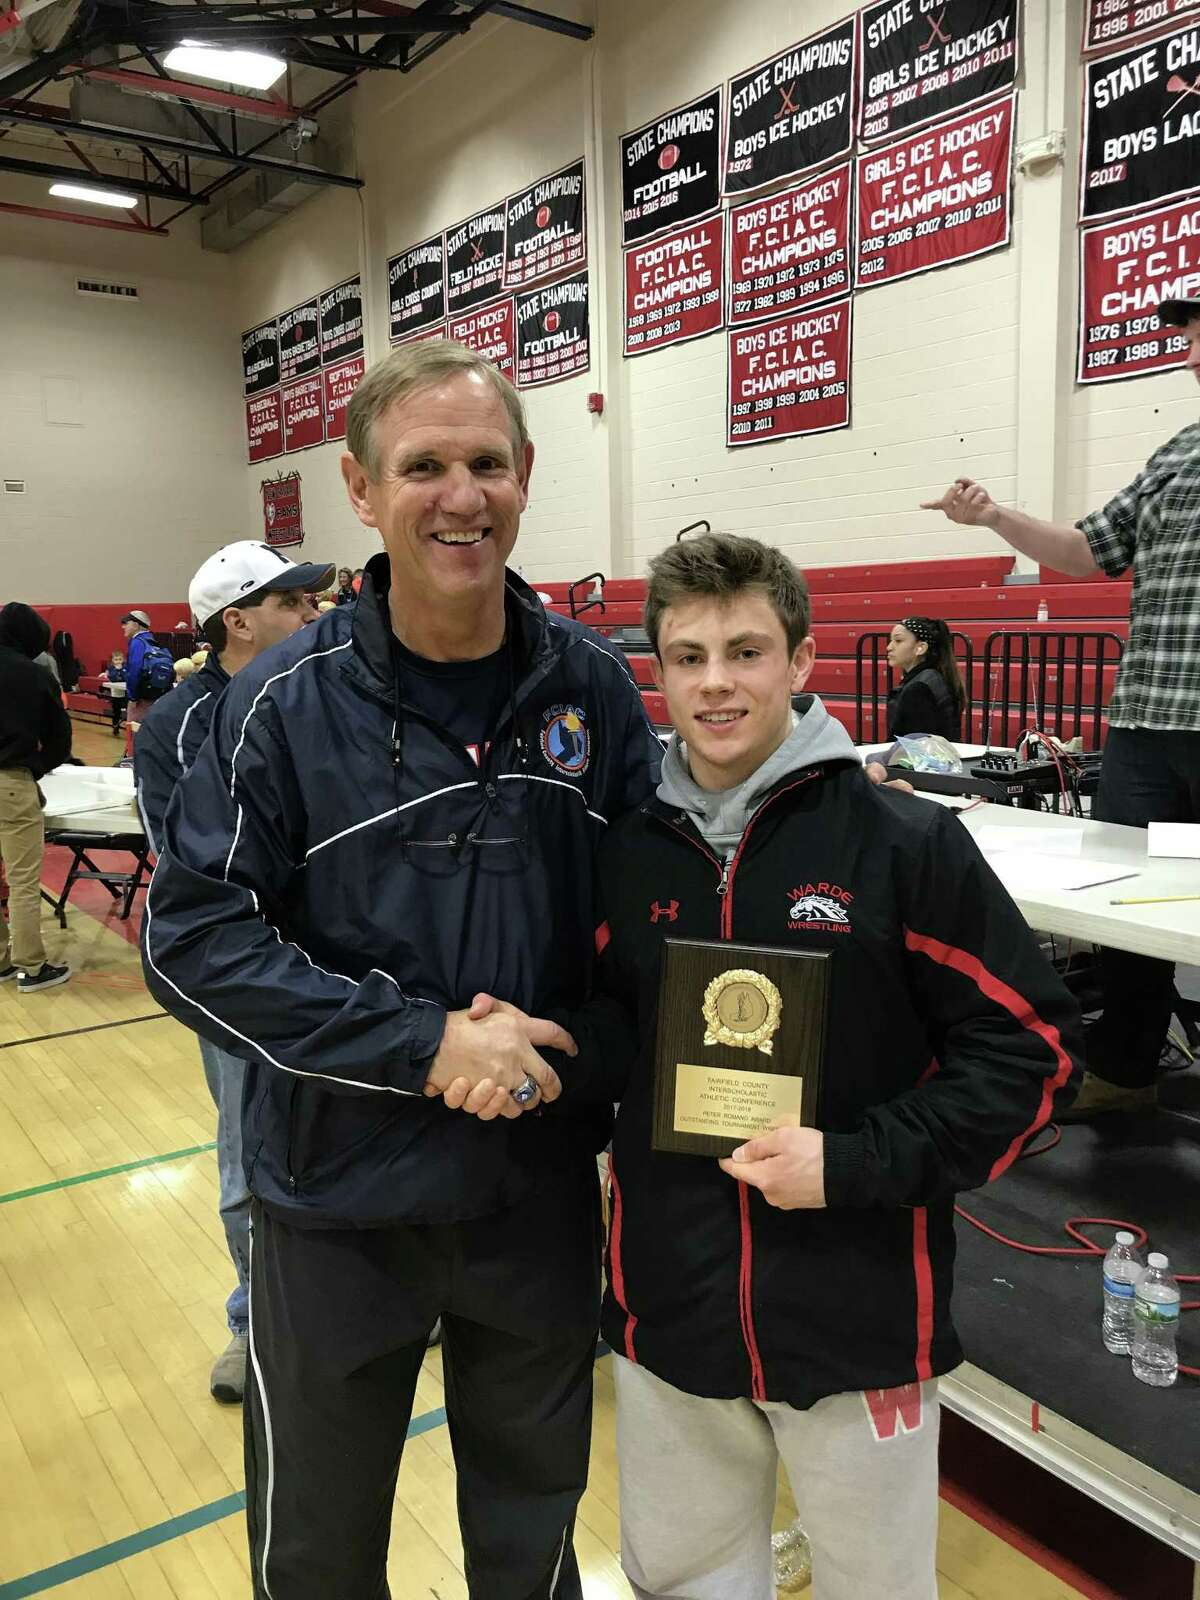 FCIAC Executive Director Dave Schulz shanks hands with 2018 FCIAC Most Outstanding Wrestler Alex Steele of Warde after Steele won the 132 pound championship.